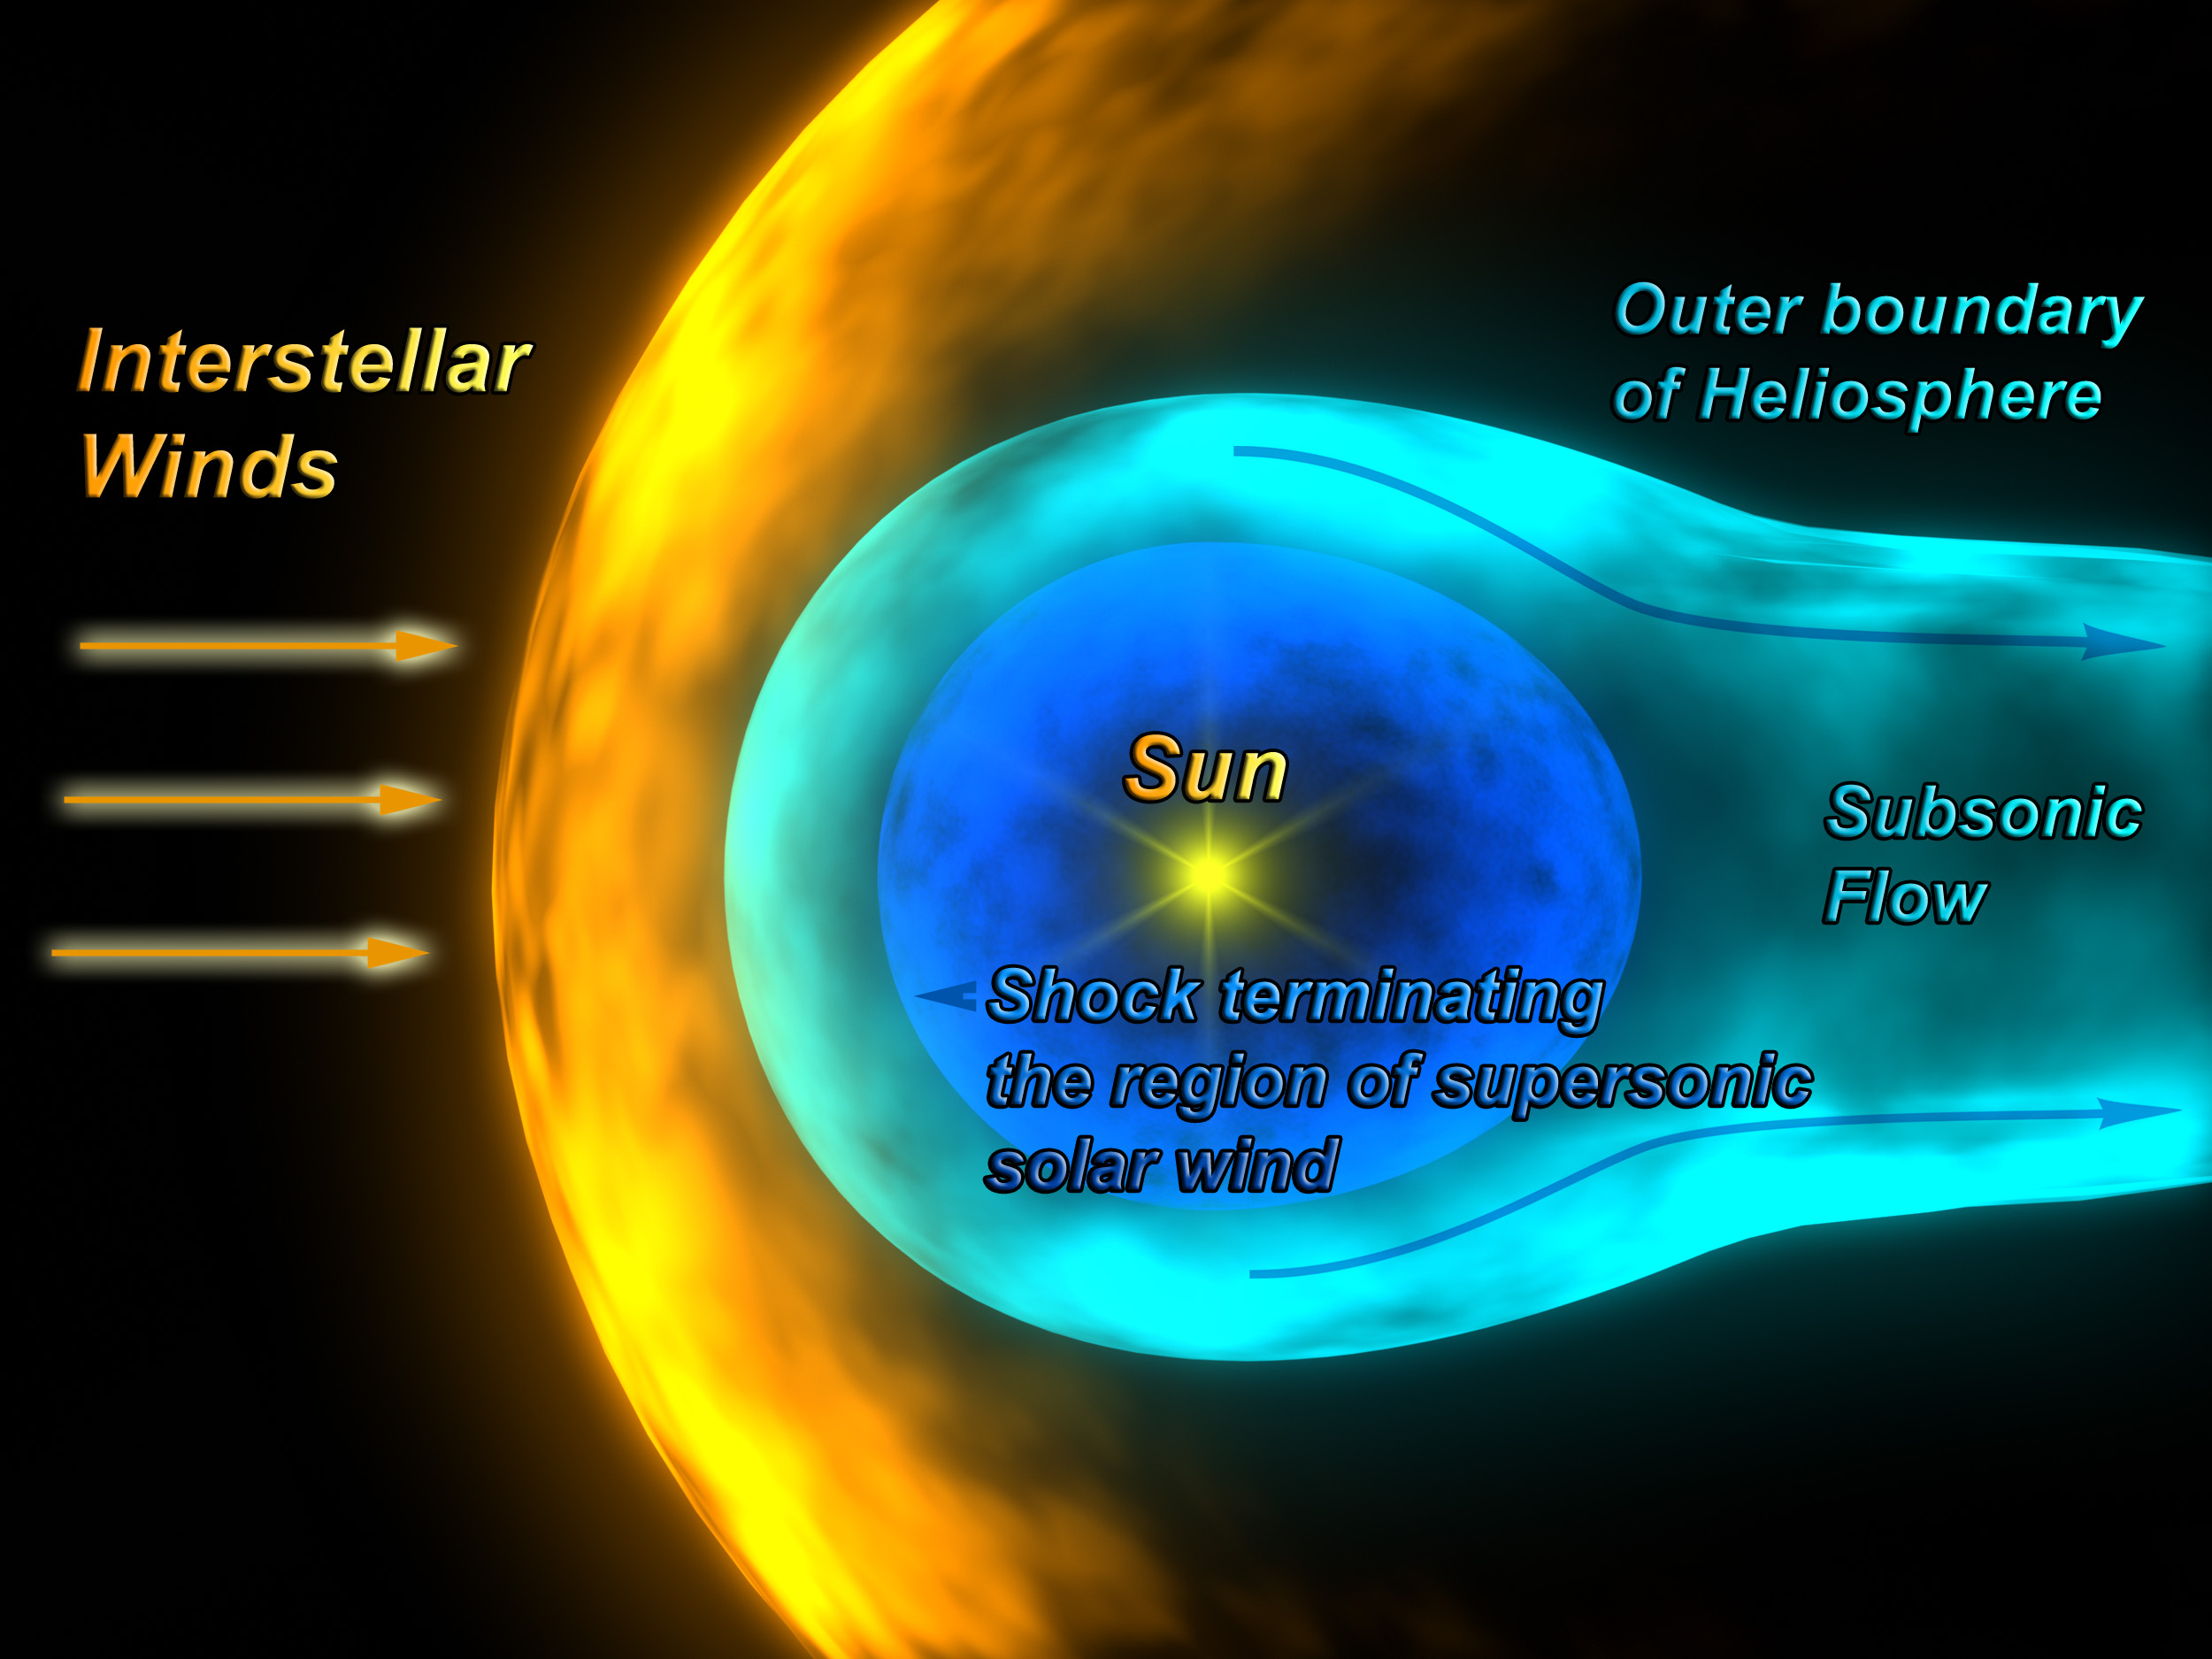 heliosphere - definition - What is